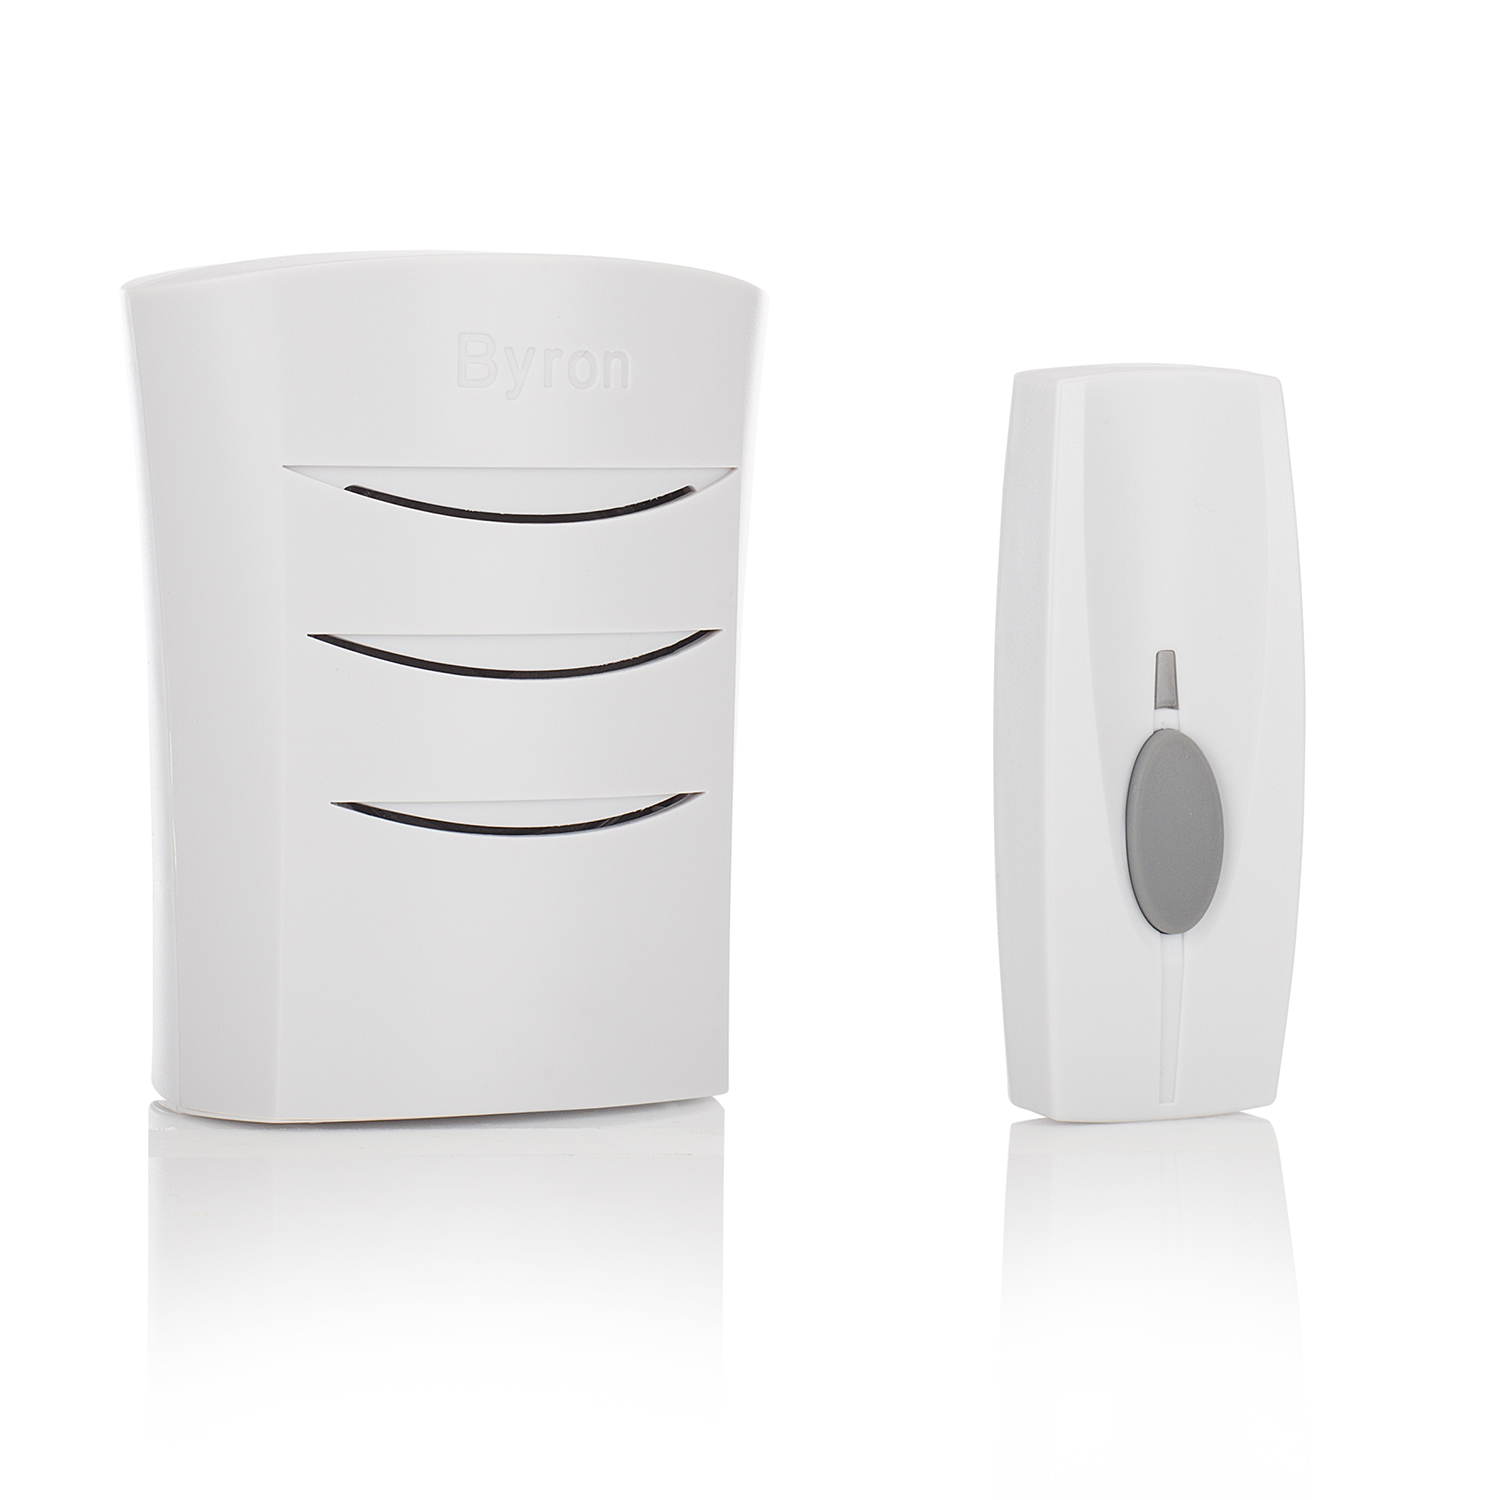 Image of Byron BY102 60m Wireless Doorbell with Plug In Chime